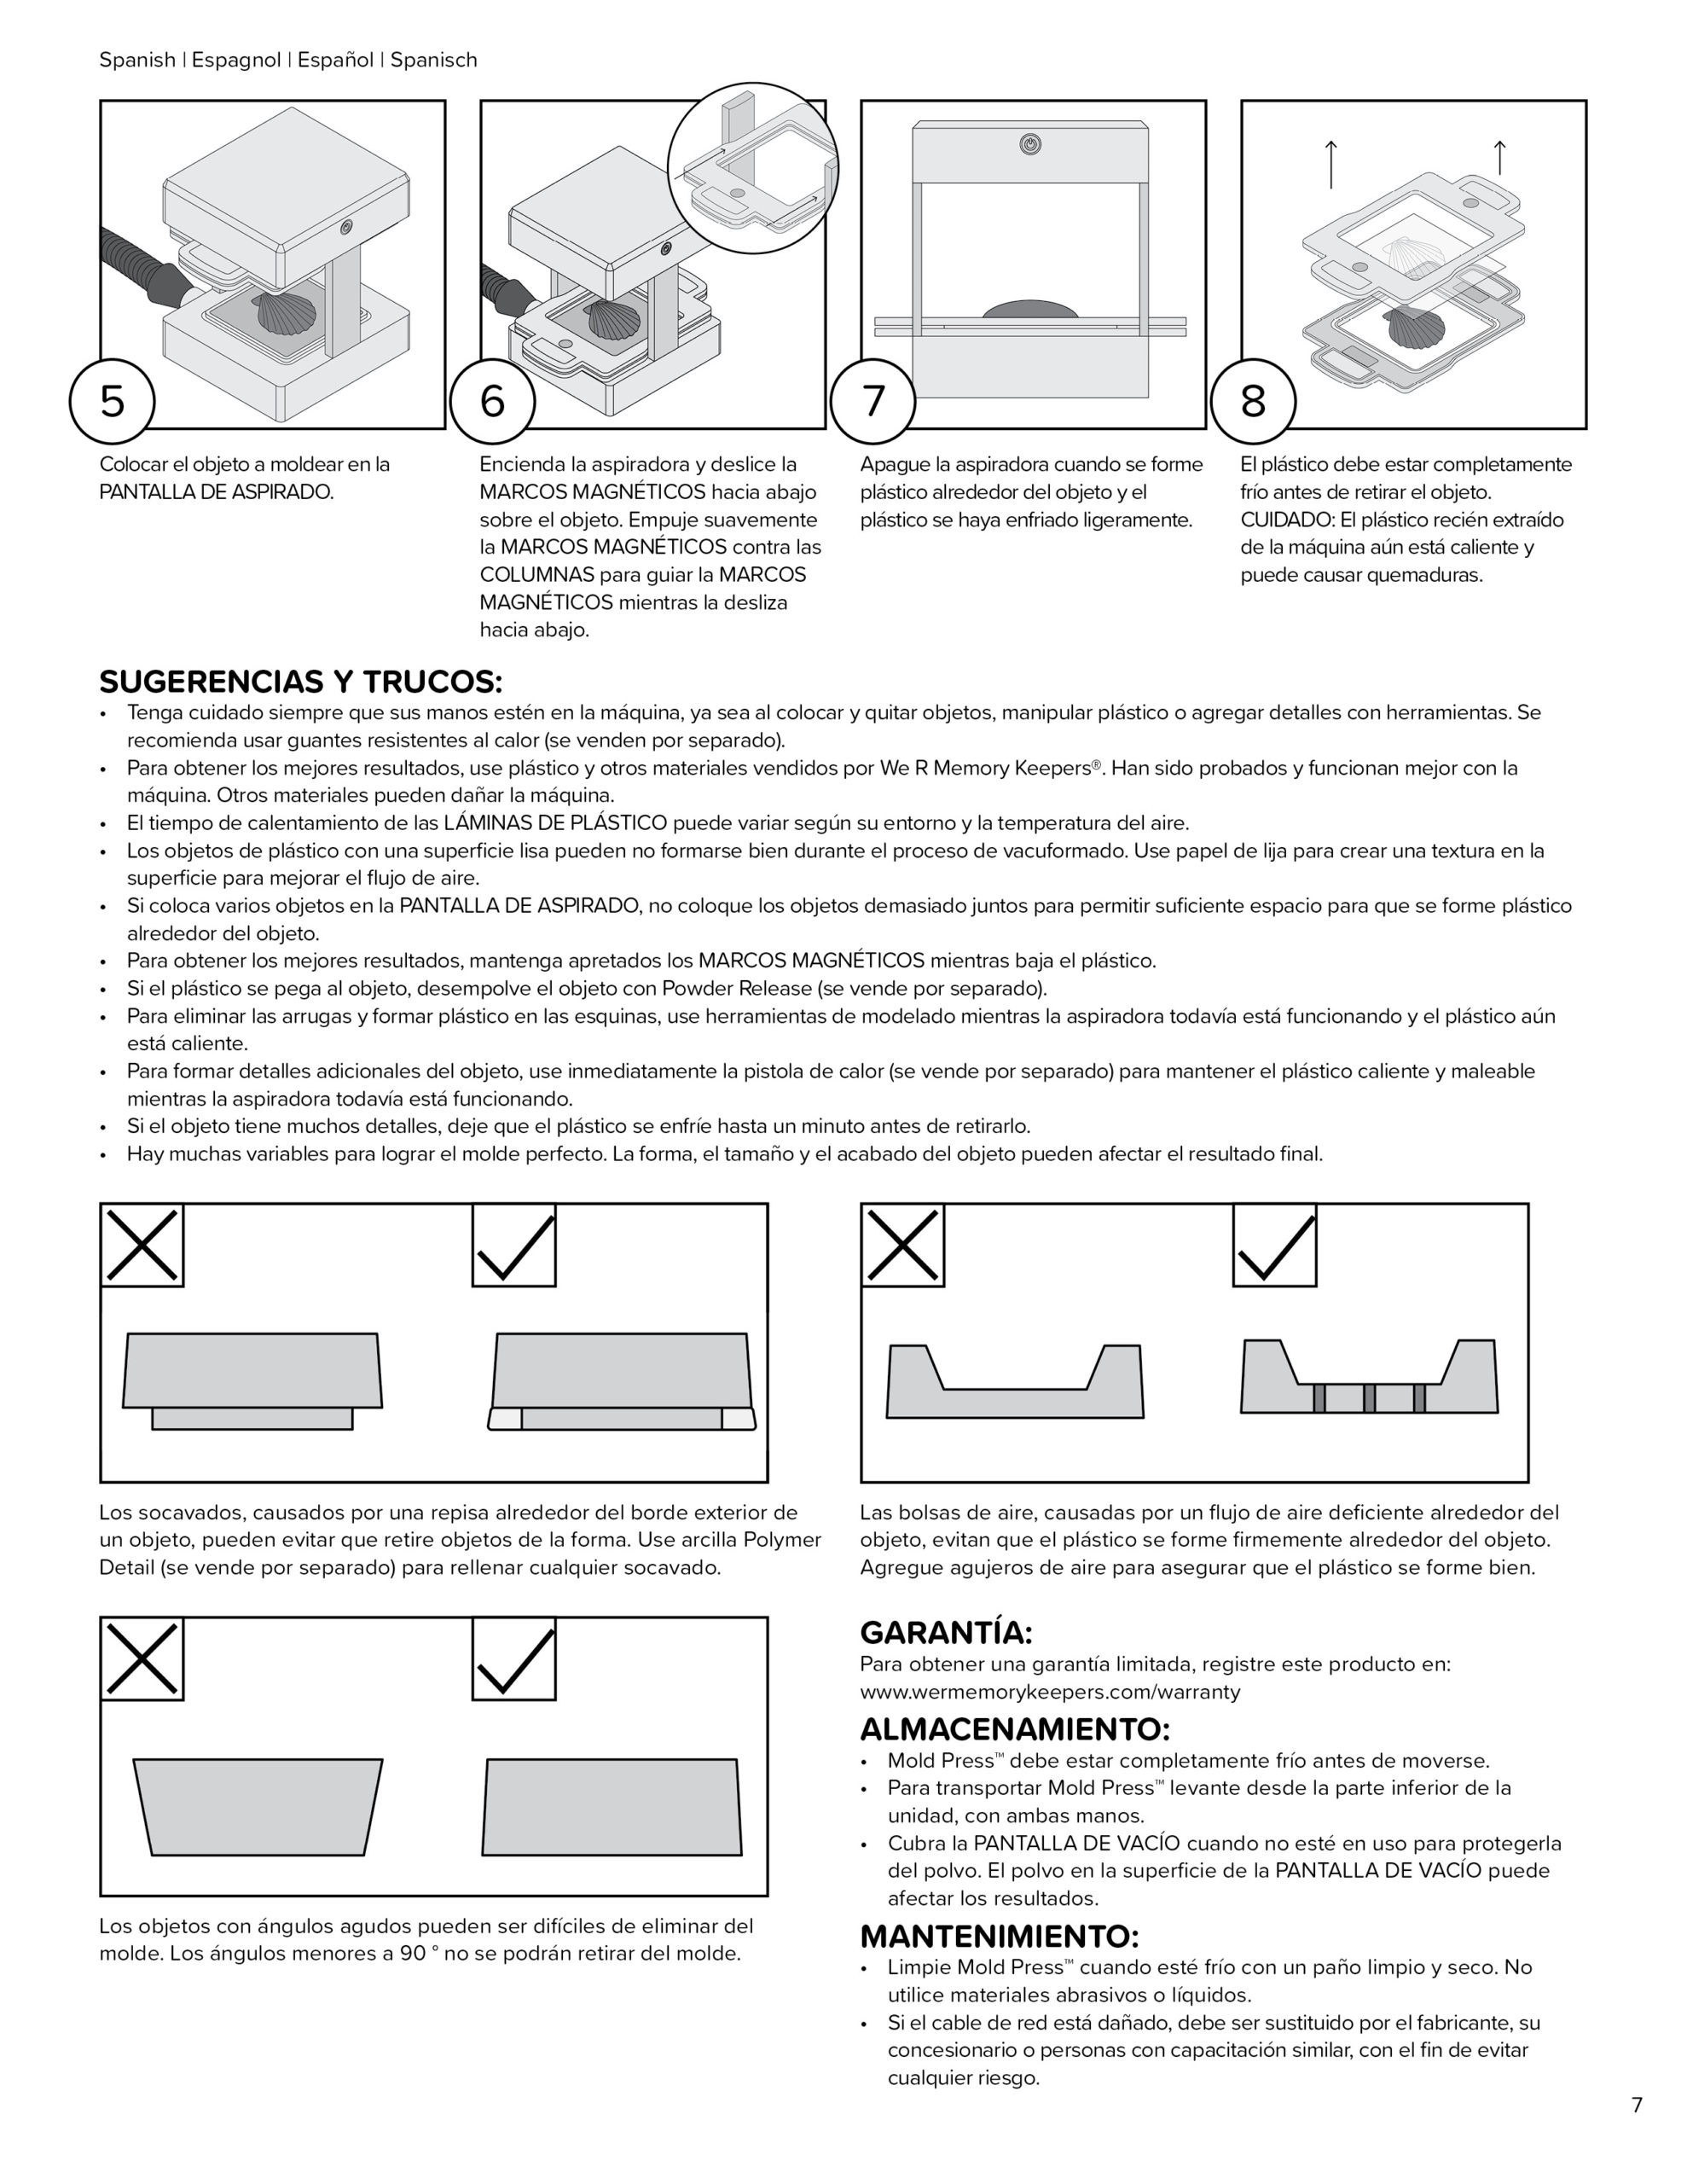 661033 WR_Instructions_MoldPress_Vacuform_V4_7